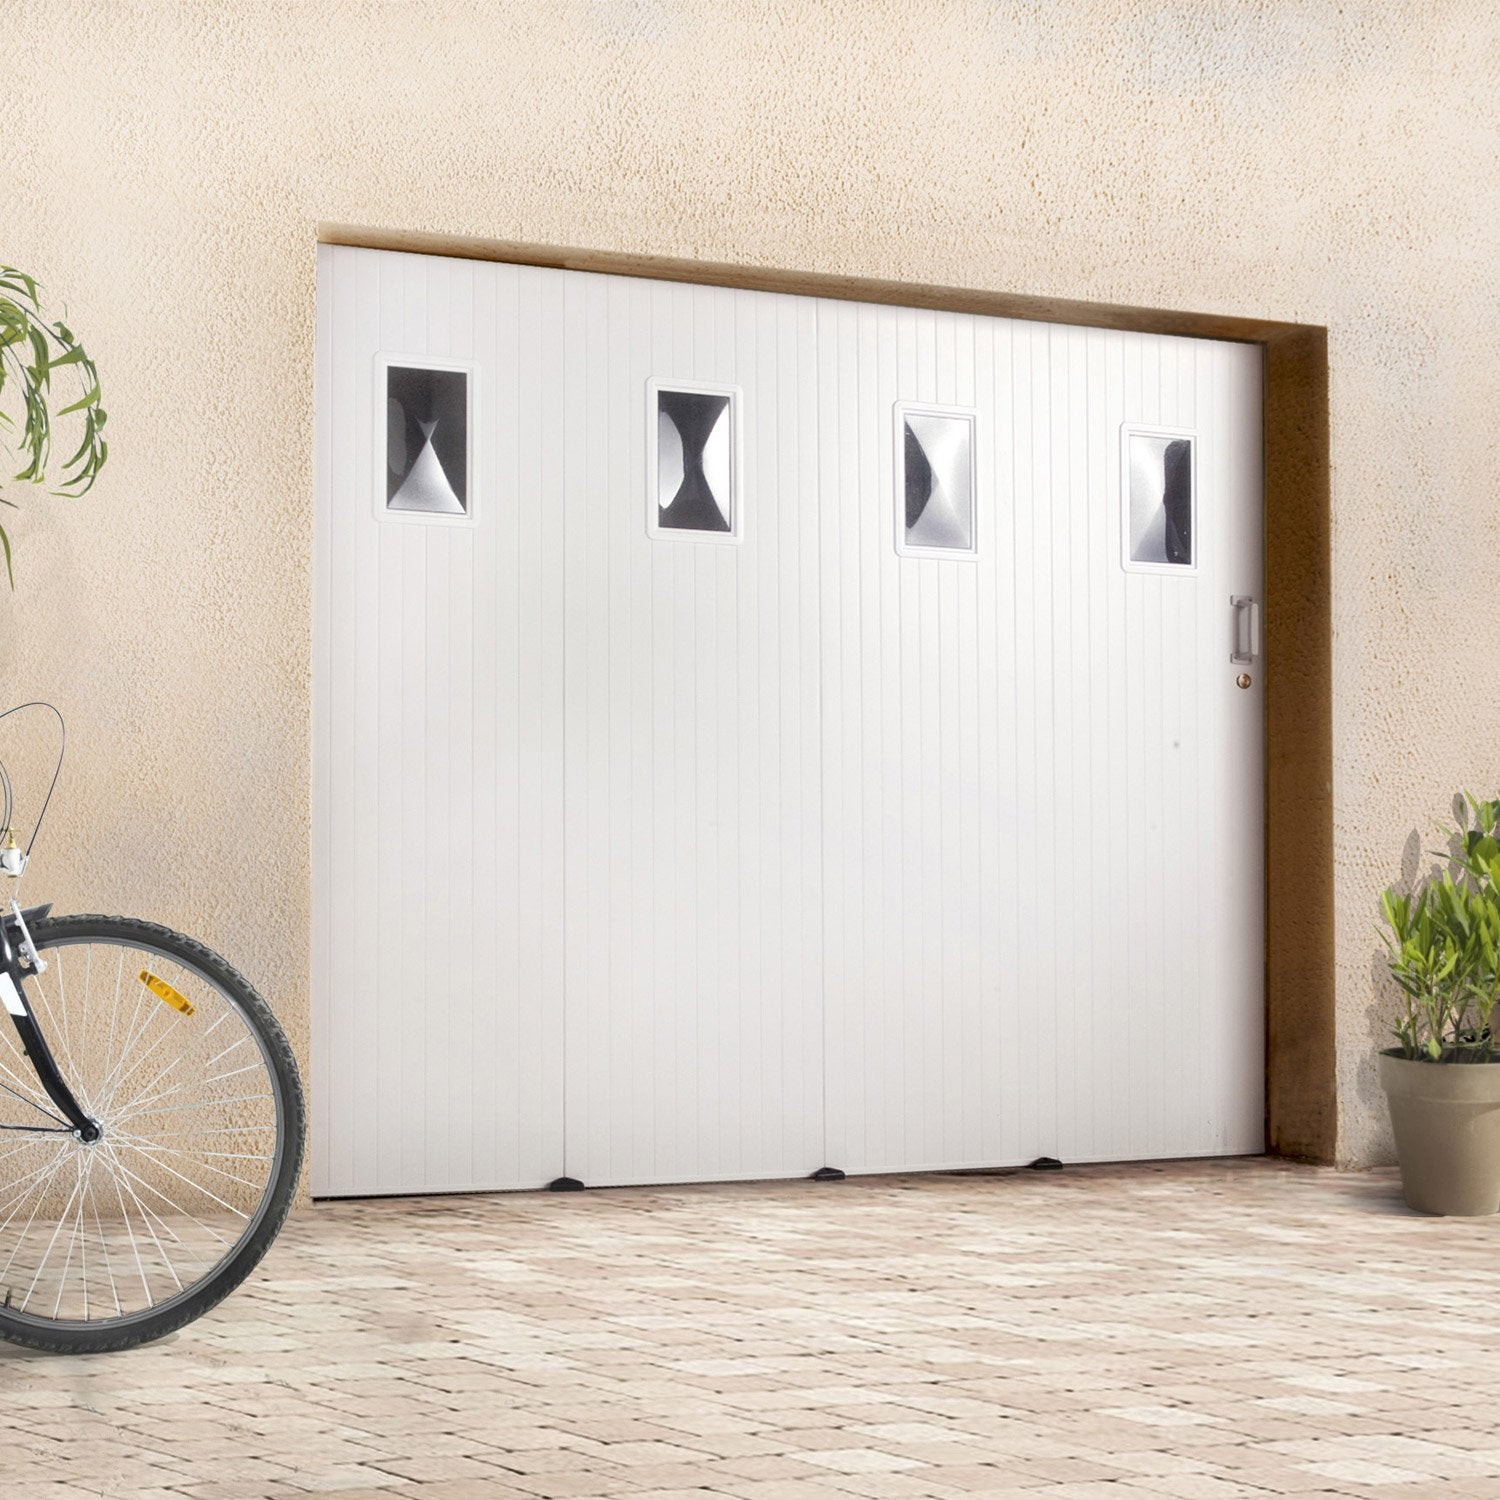 Pose d 39 une porte de garage coulissante leroy merlin for Porte de garage installation